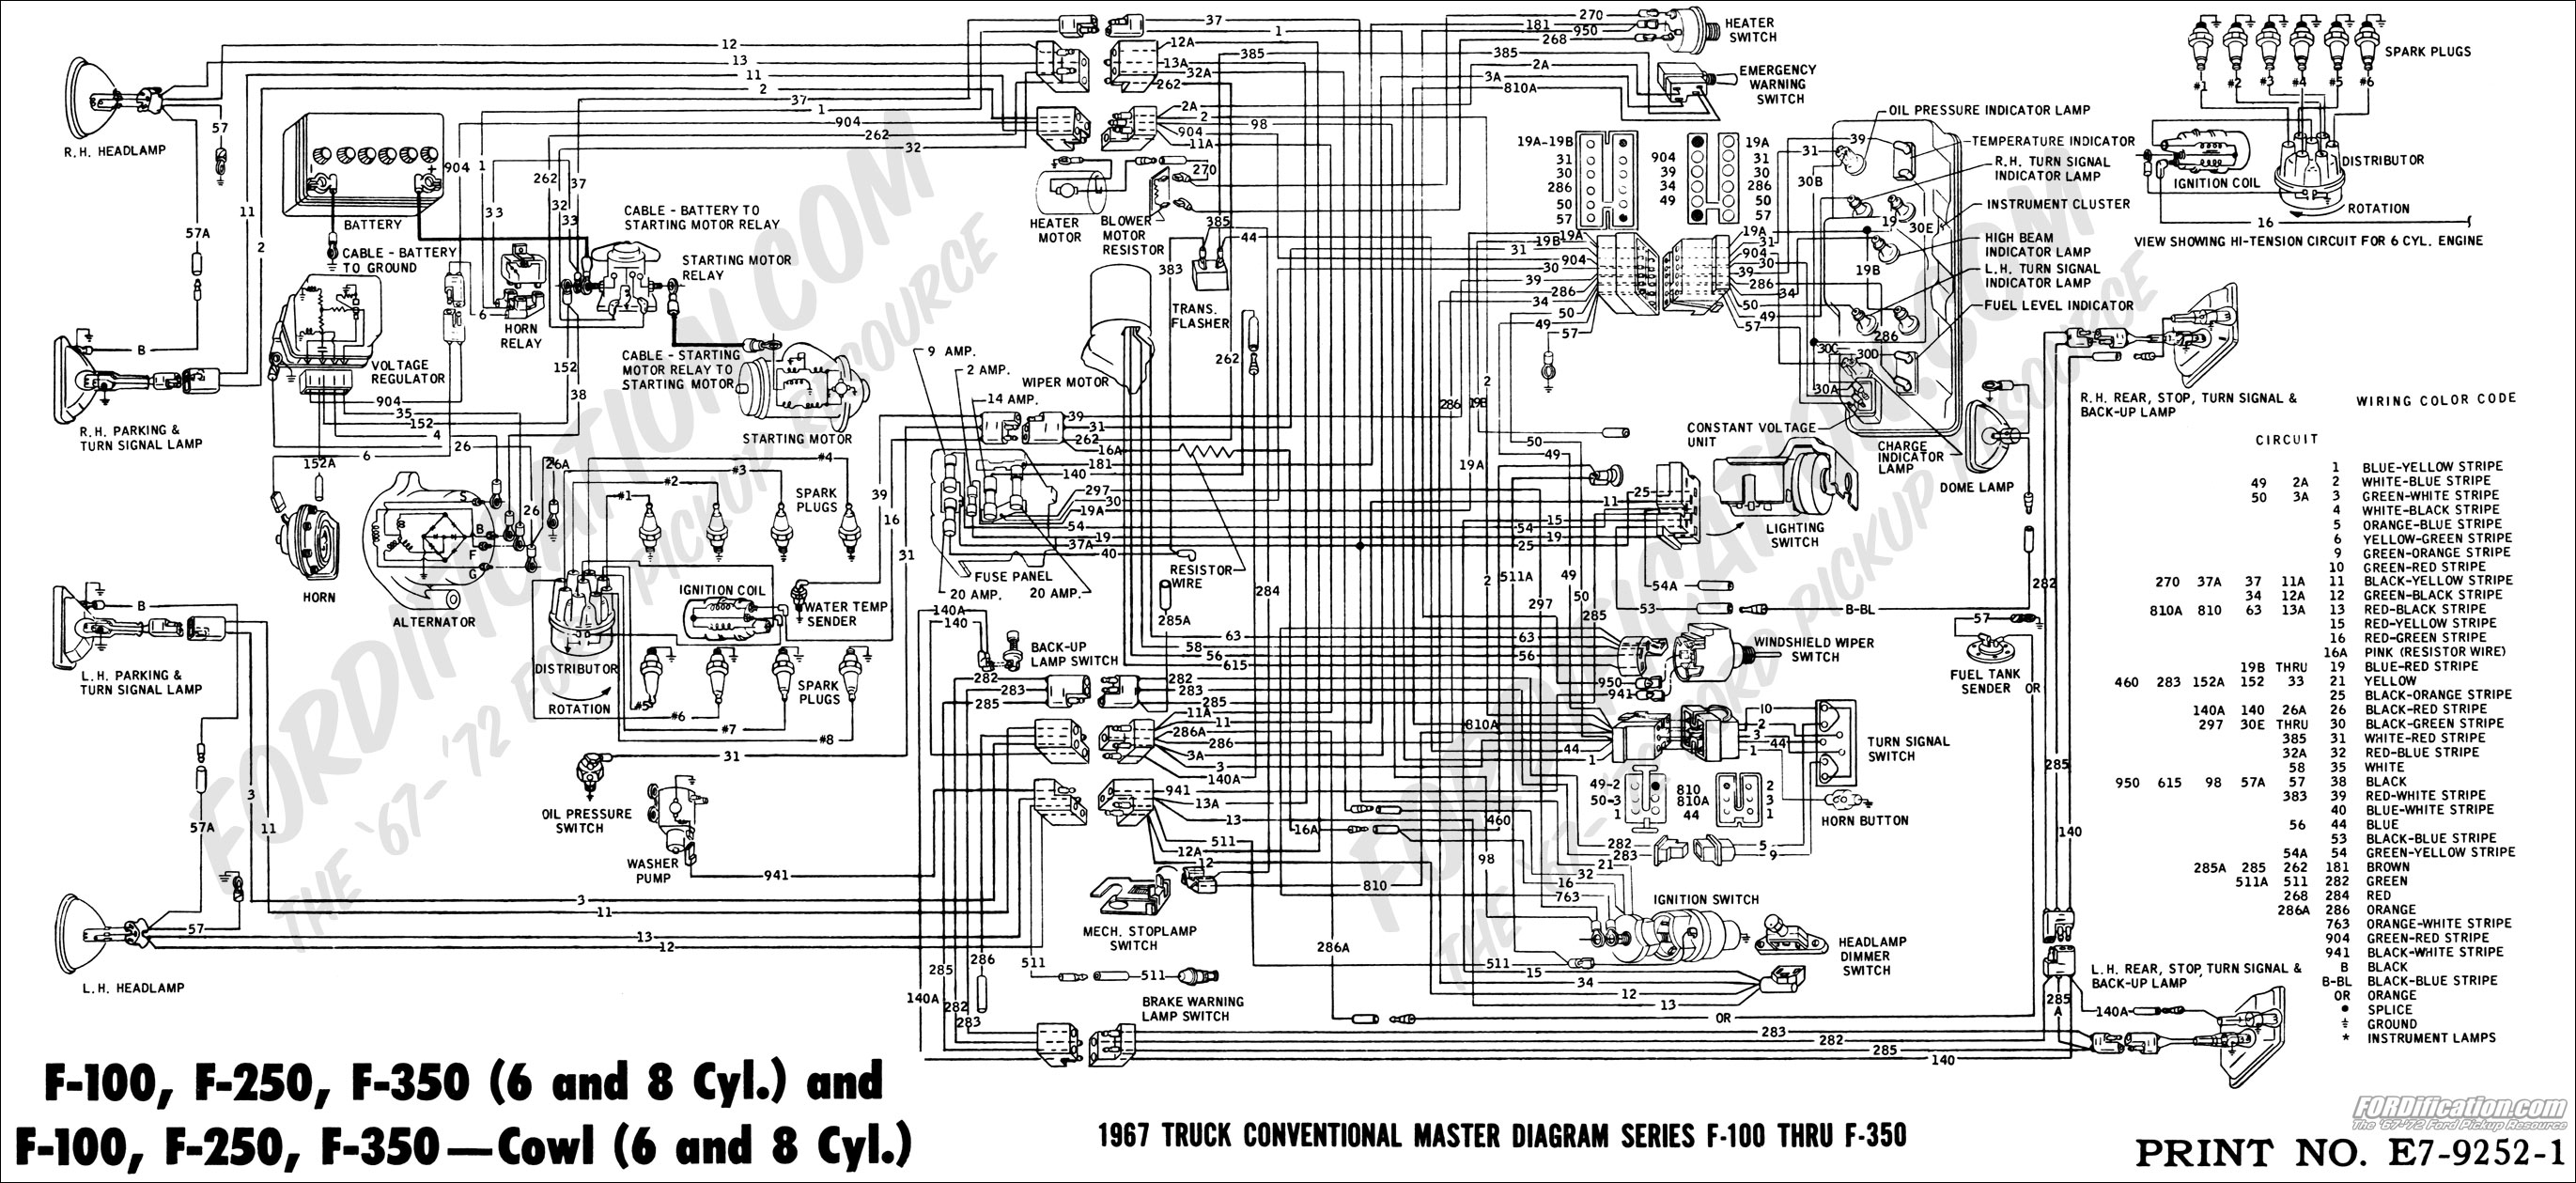 2013 f 150 starter wiring diagram 2013 wiring diagrams online 2013 ford wiring diagram 2013 wiring diagrams